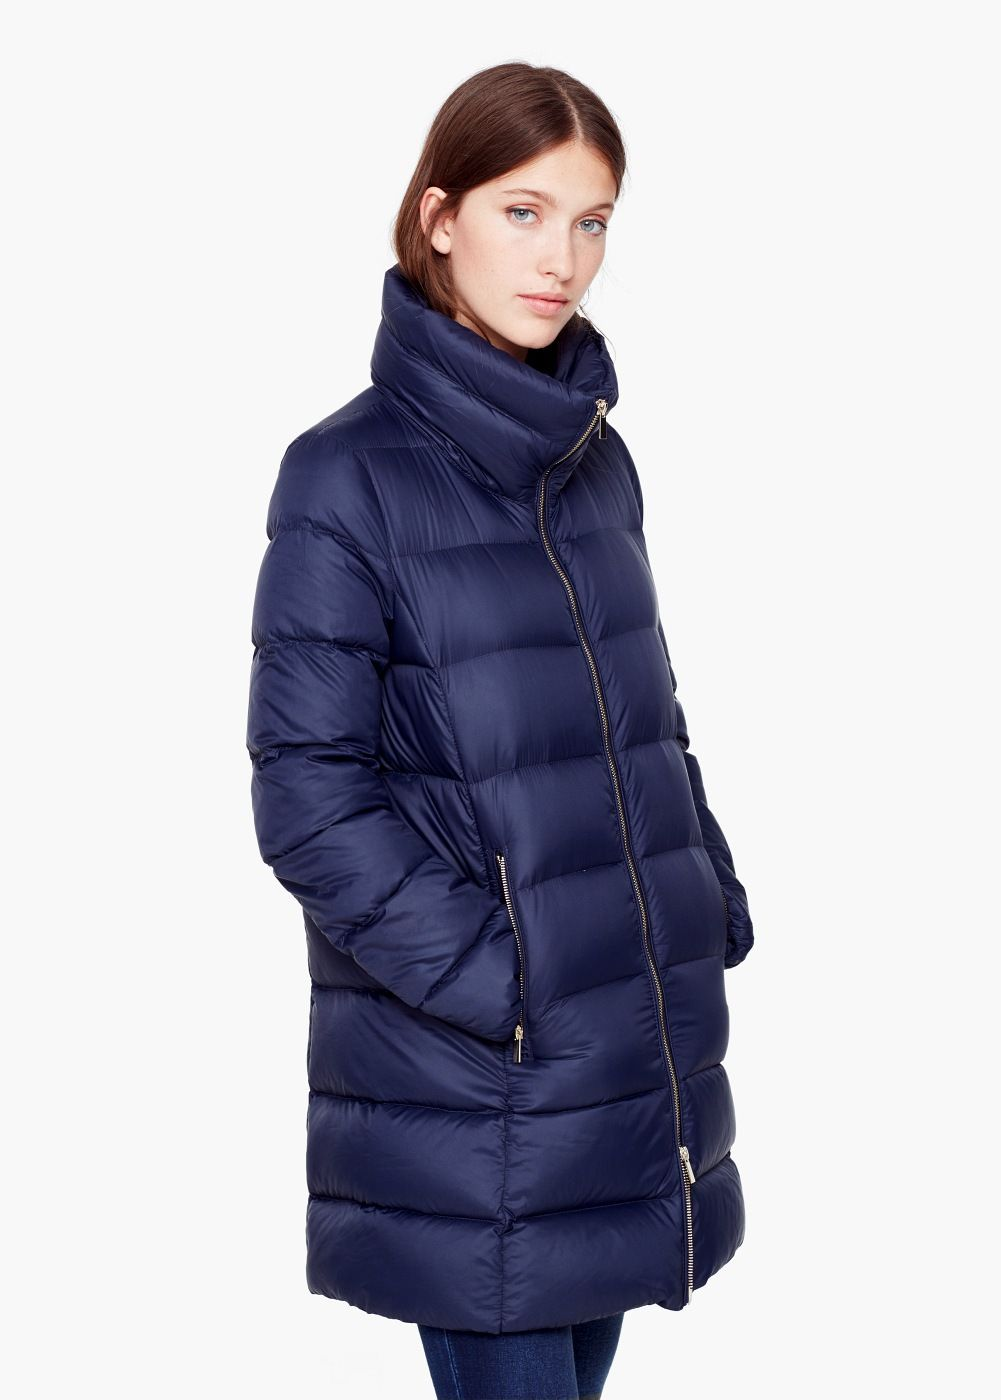 Quilted feather coat | Feathers and Woman : quilted ladies coat - Adamdwight.com